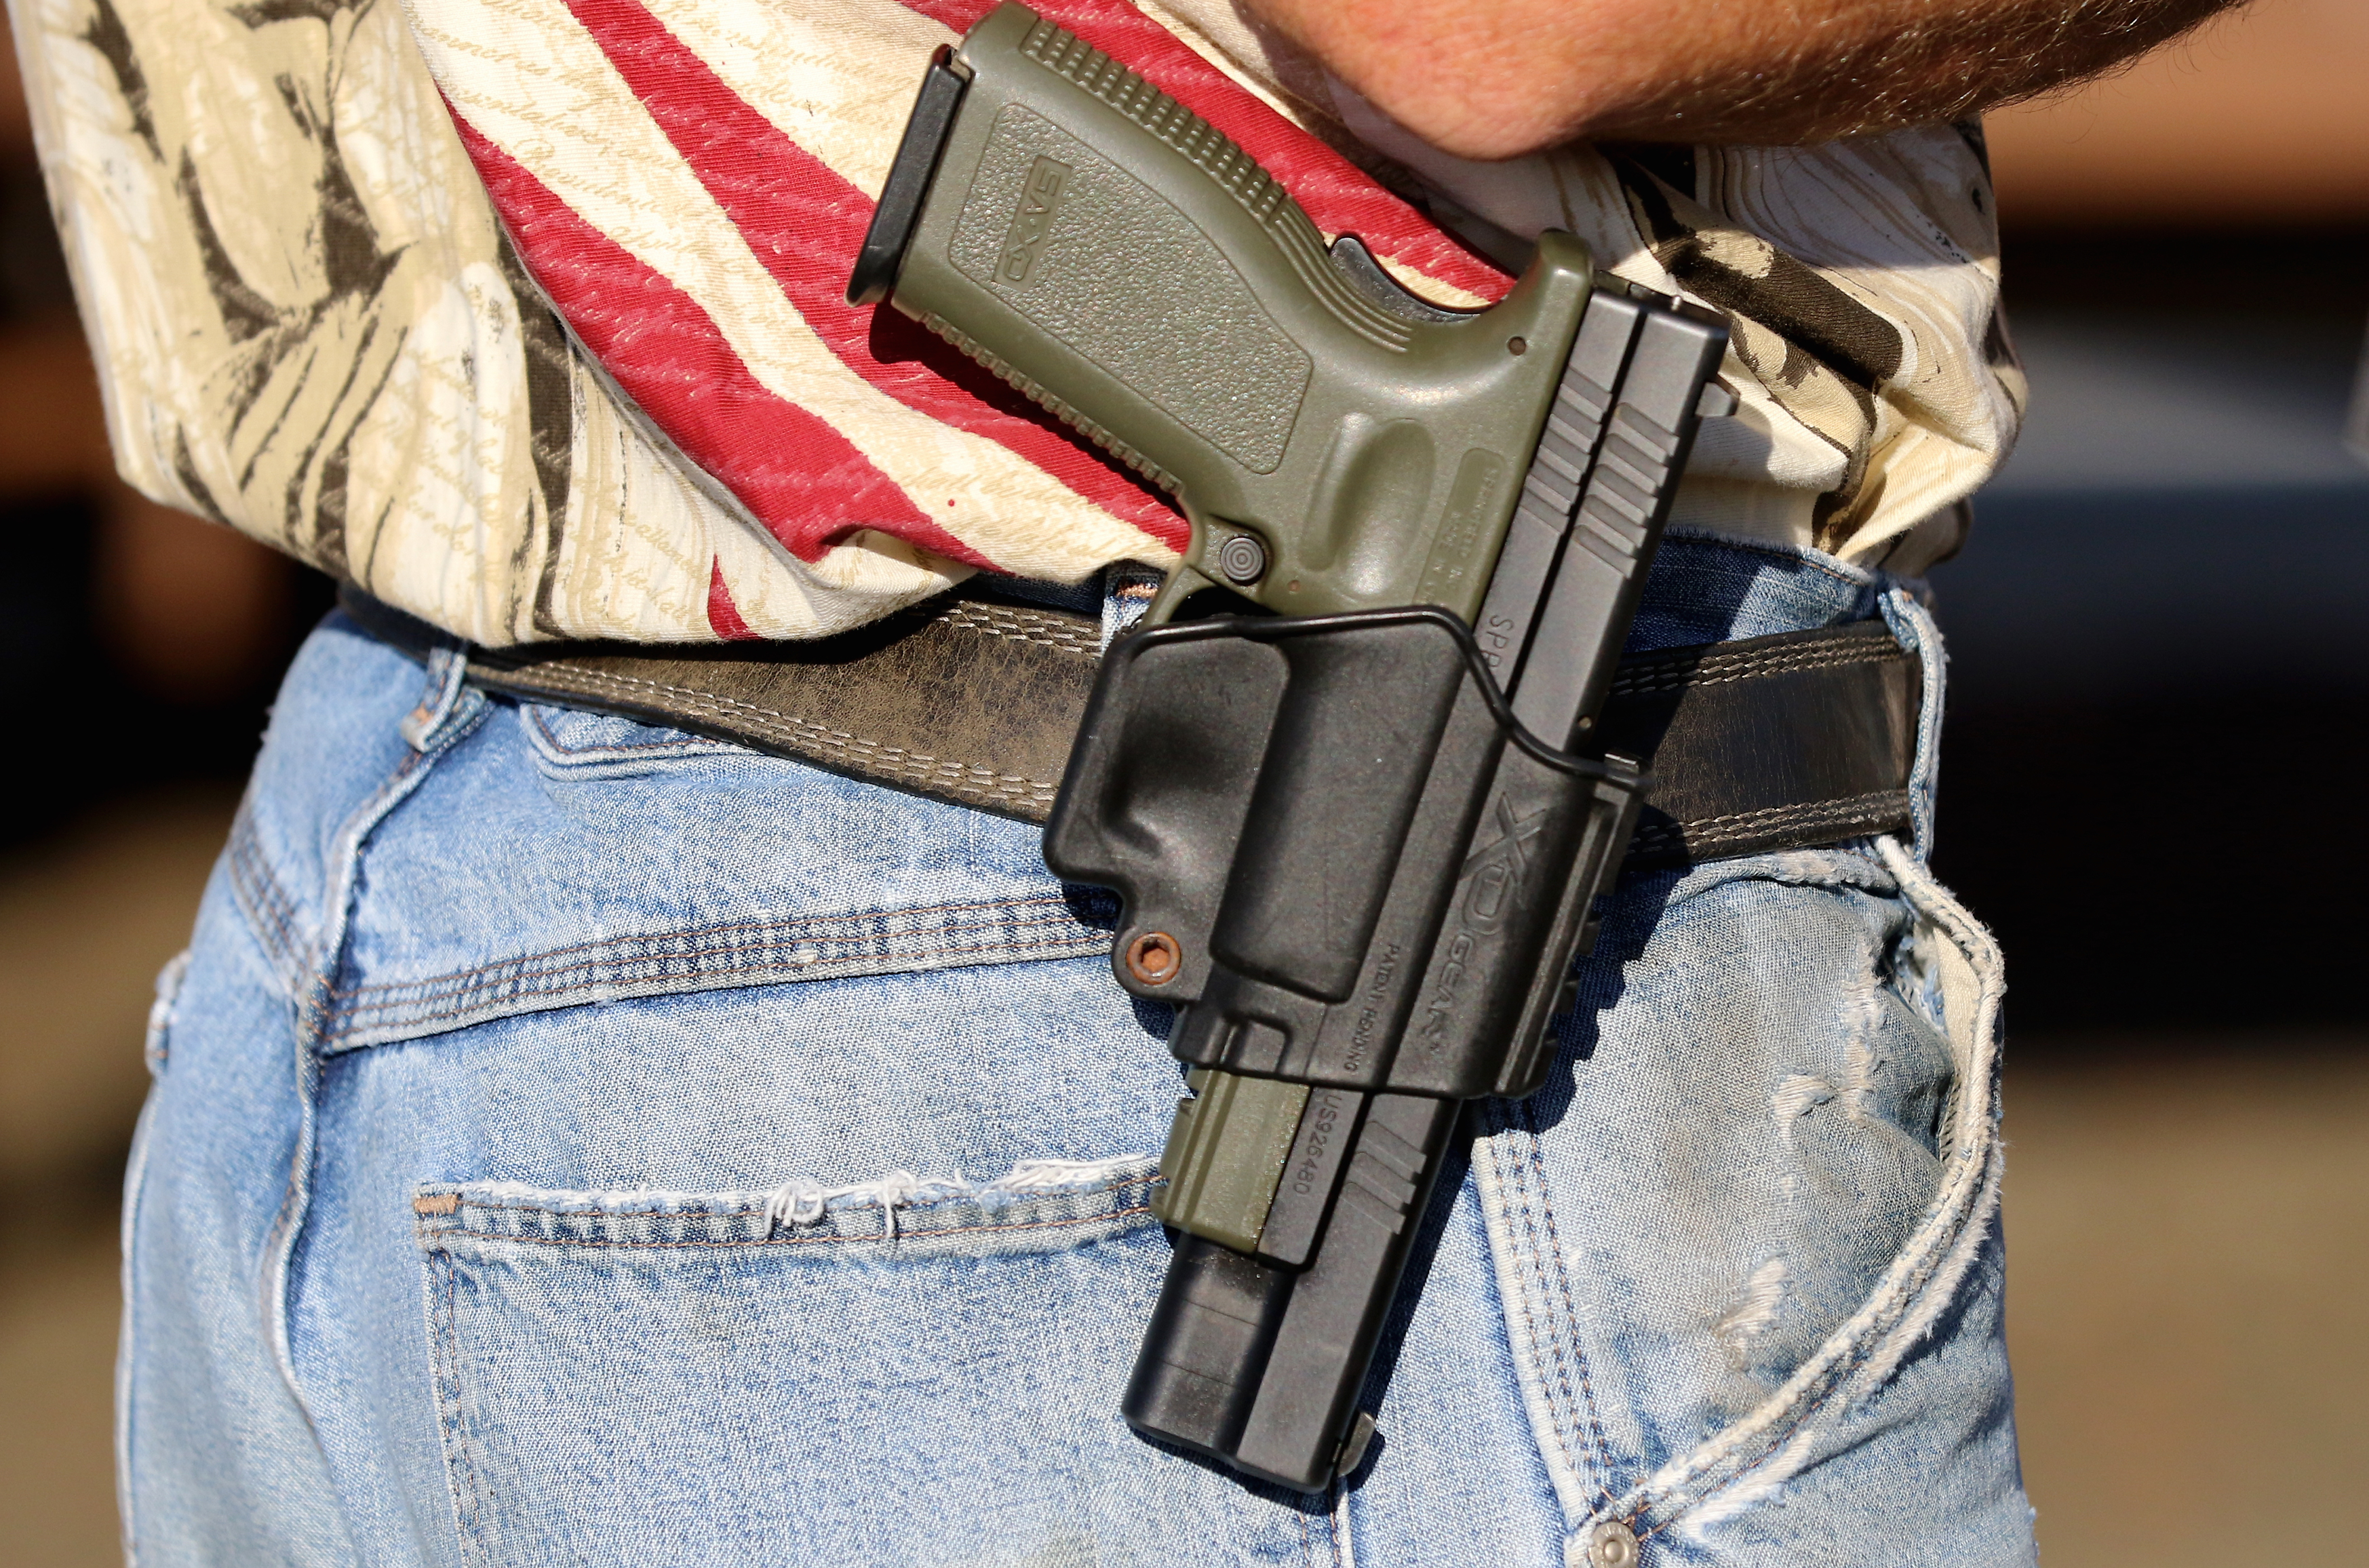 Photo: Gun In Holster, Roseburg, Oregon